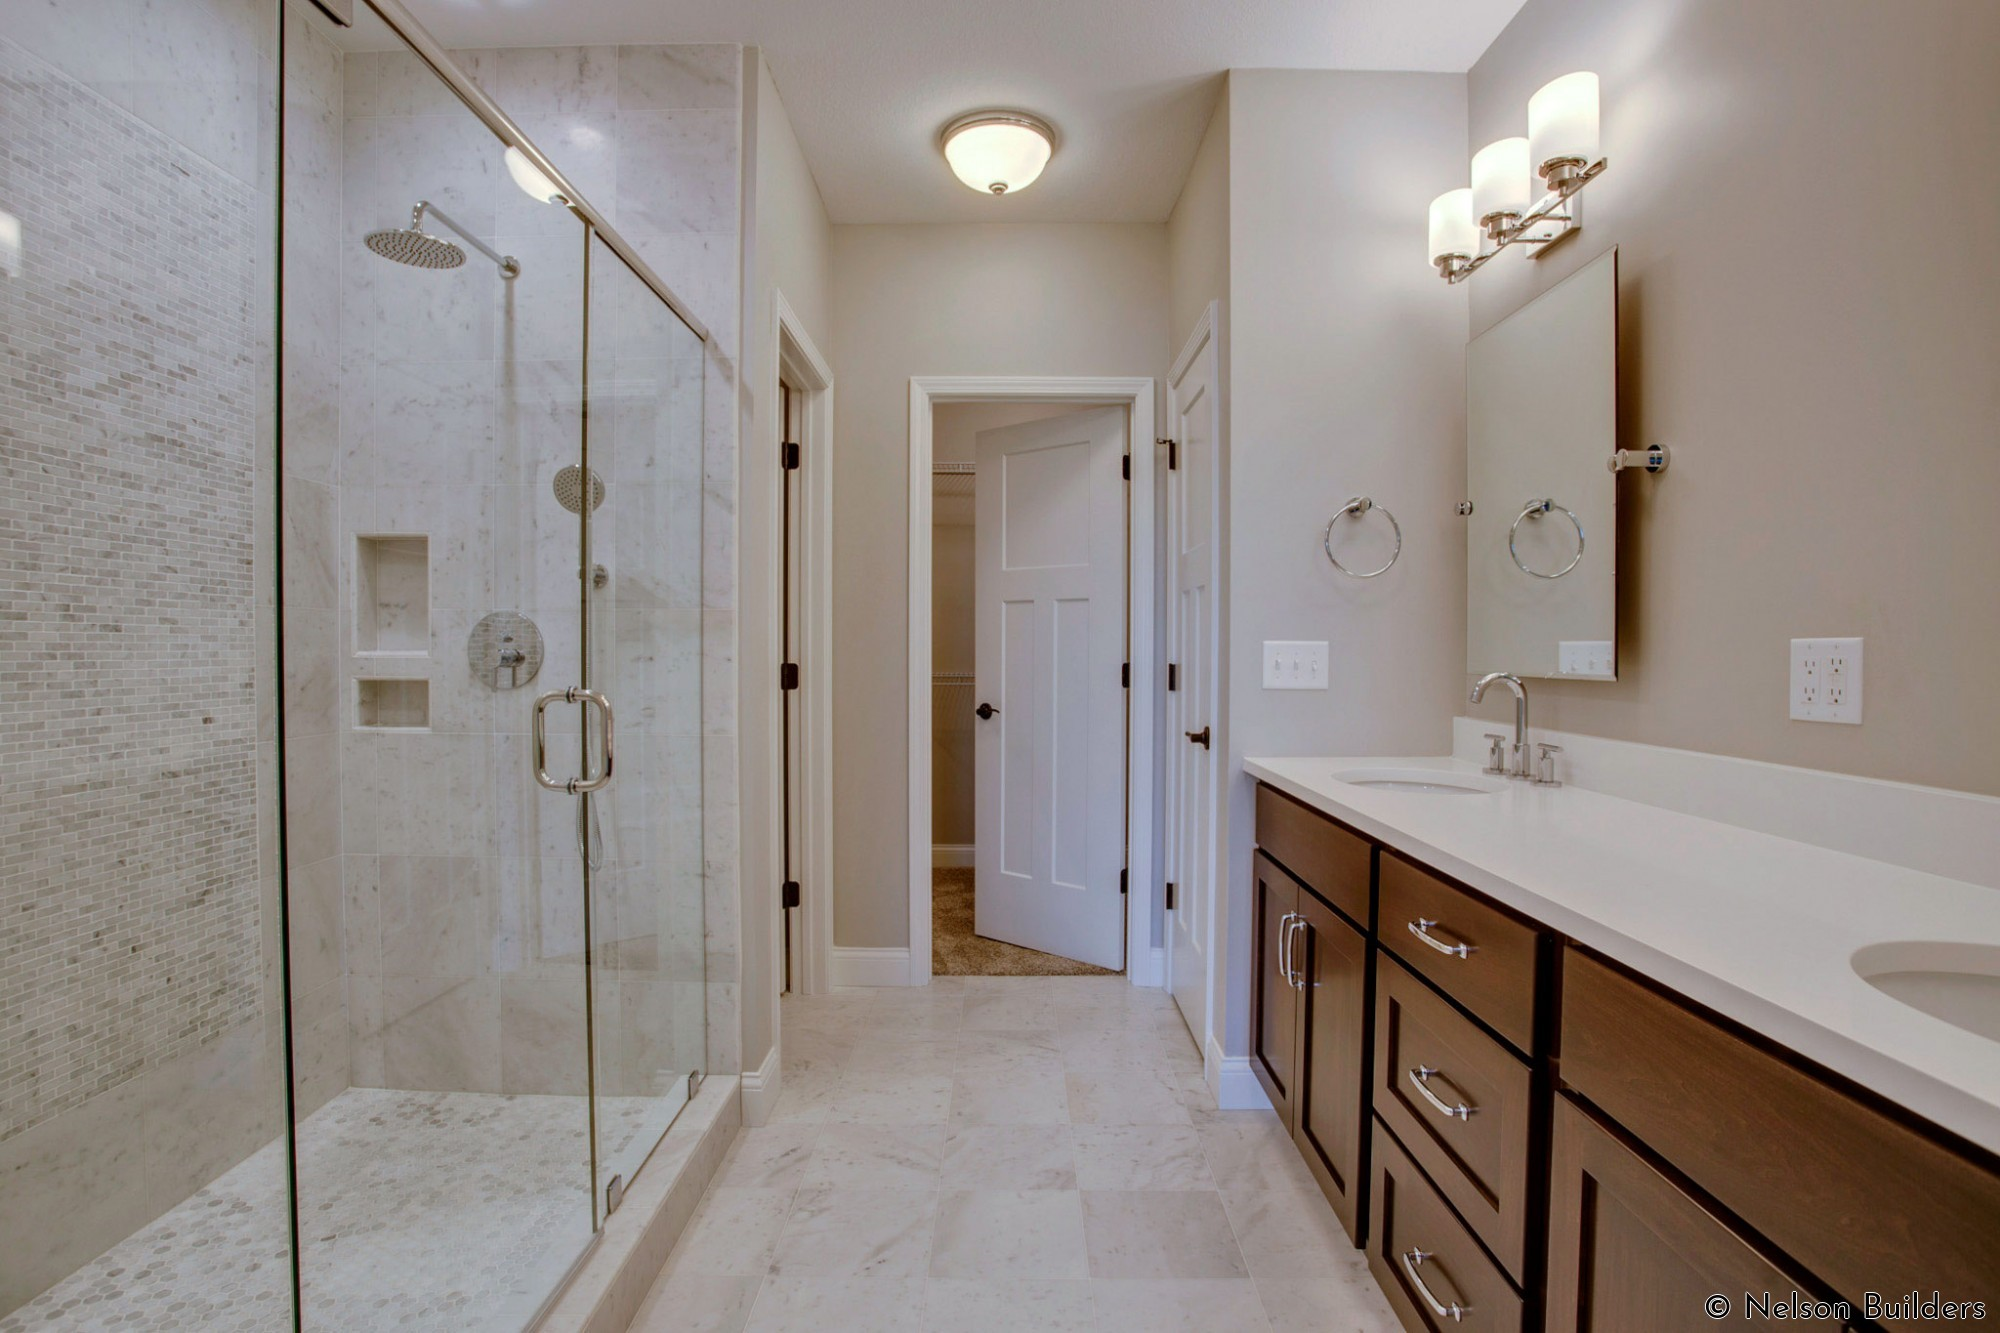 The beautiful, Carrara covered master bath and shower of this new Cherrydale plan by Nelson Builders.